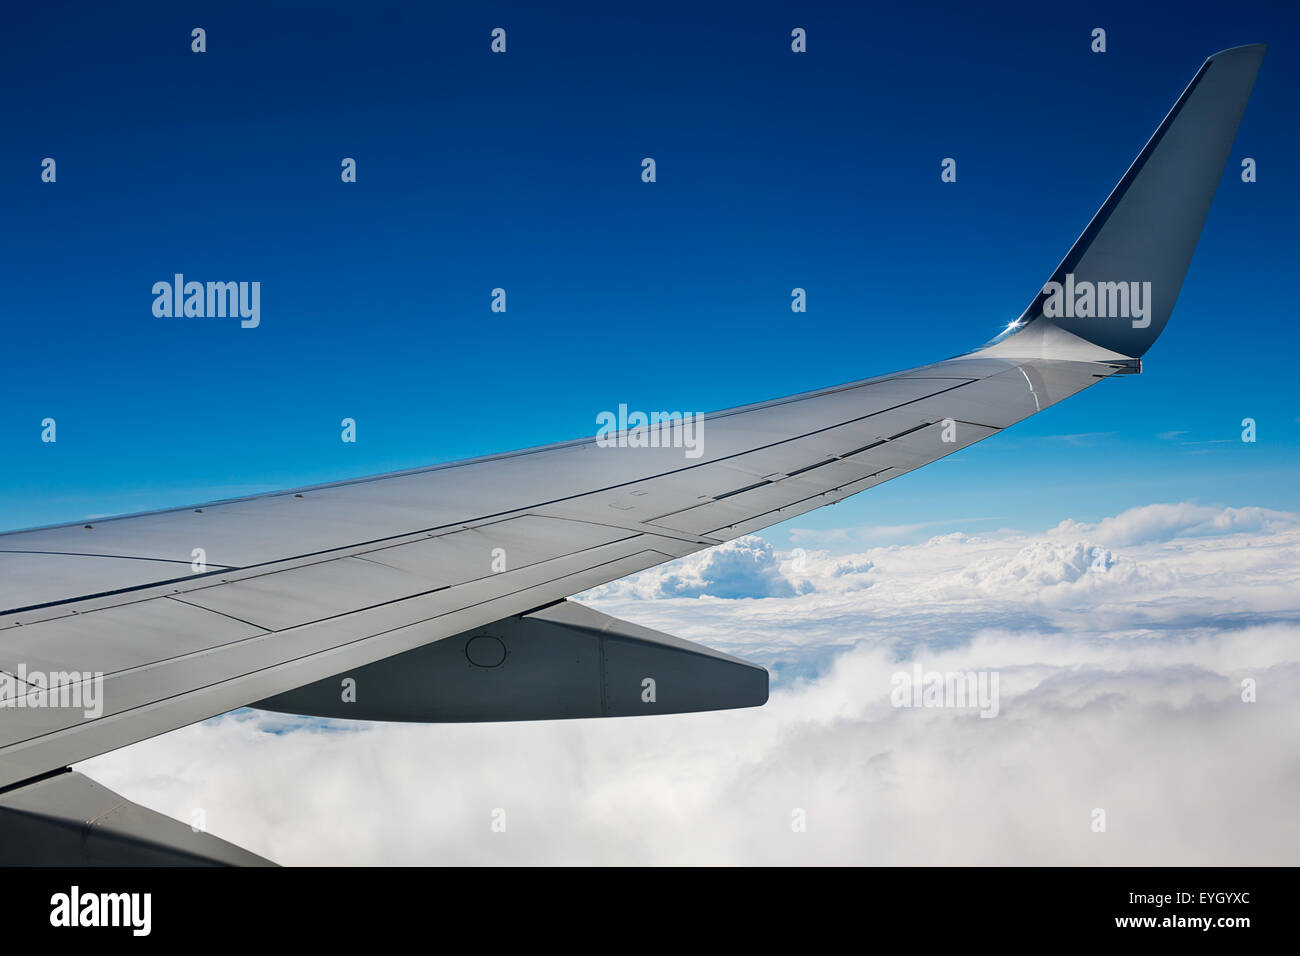 Airplane wing on sky and clouds background - Stock Image